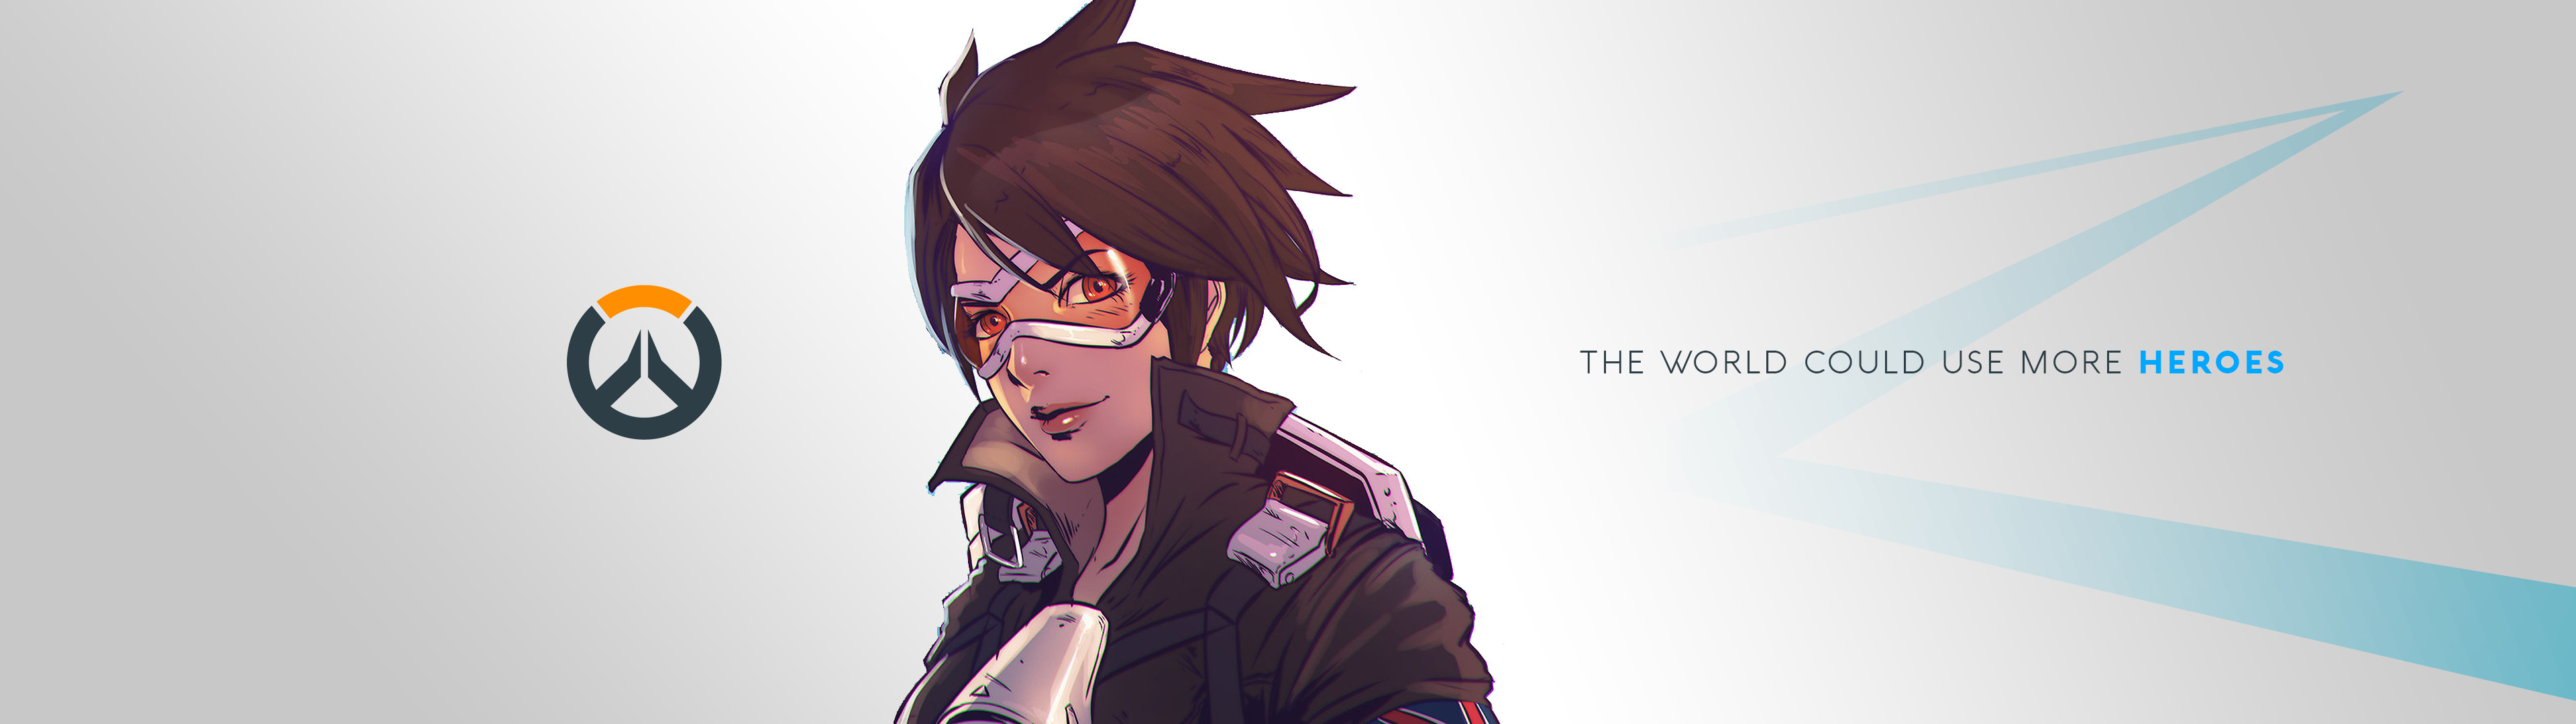 3840x1080 Video Game - Overwatch Tracer (Overwatch) Bakgrund